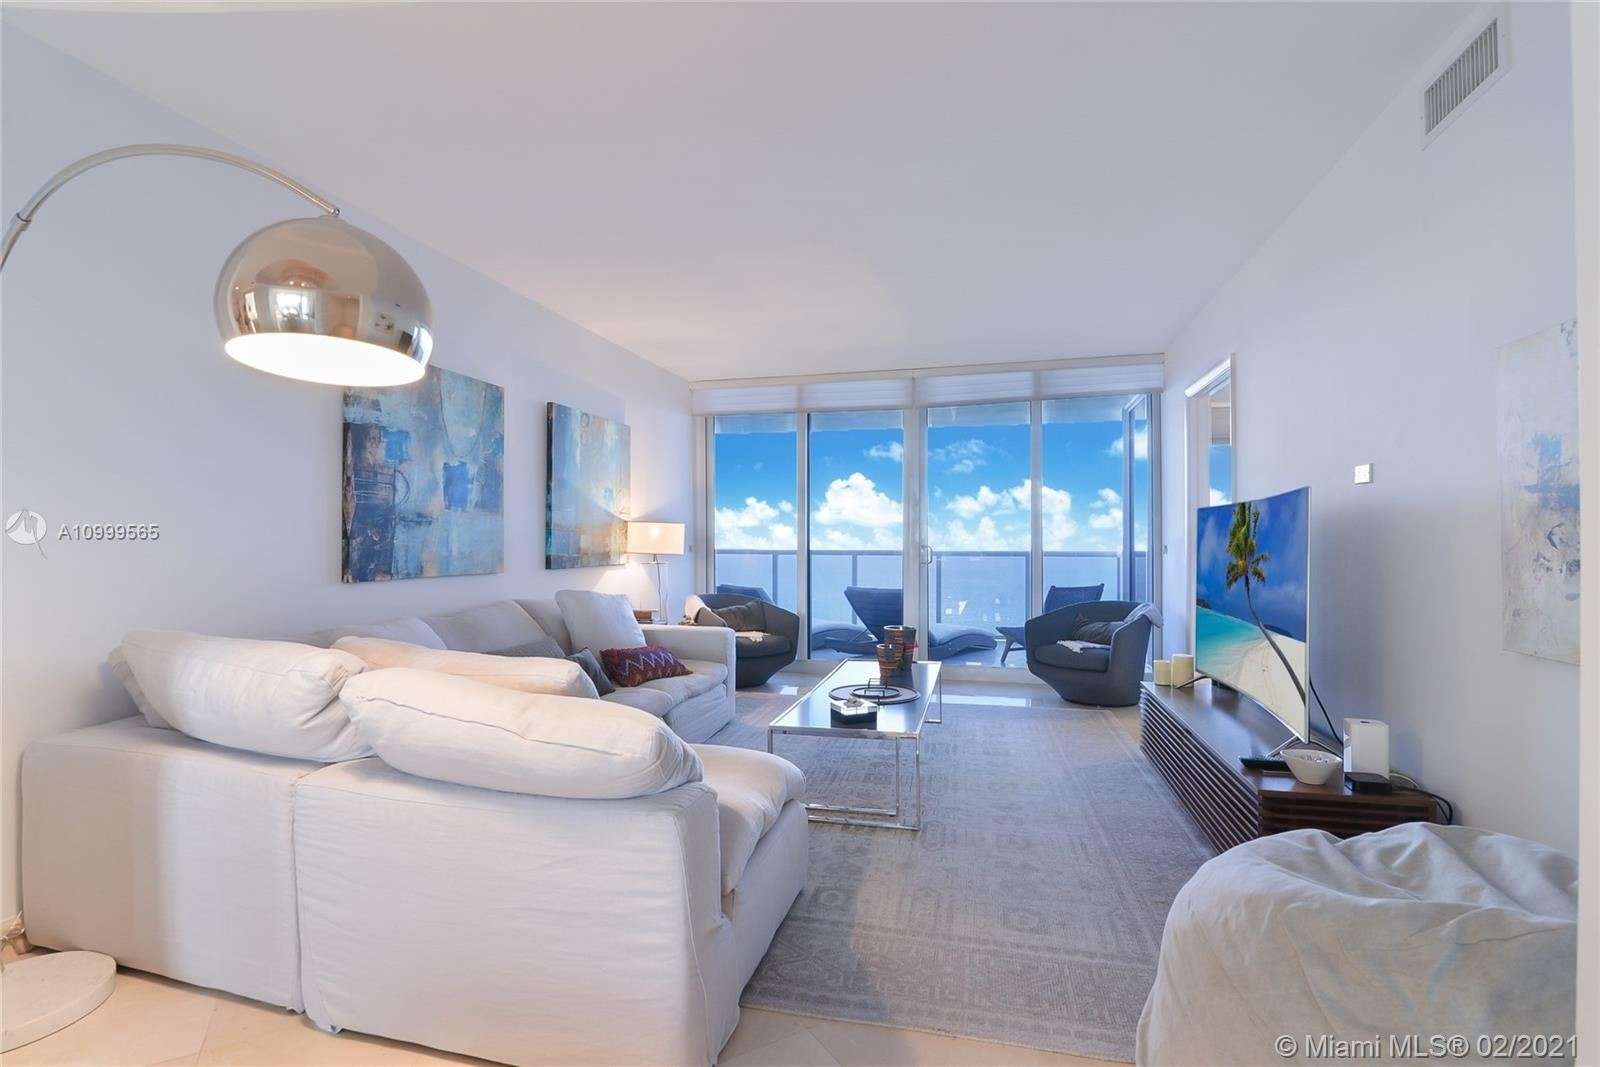 19111 Collins Ave #3003, Sunny Isles, FL 33160 - #: A10999565